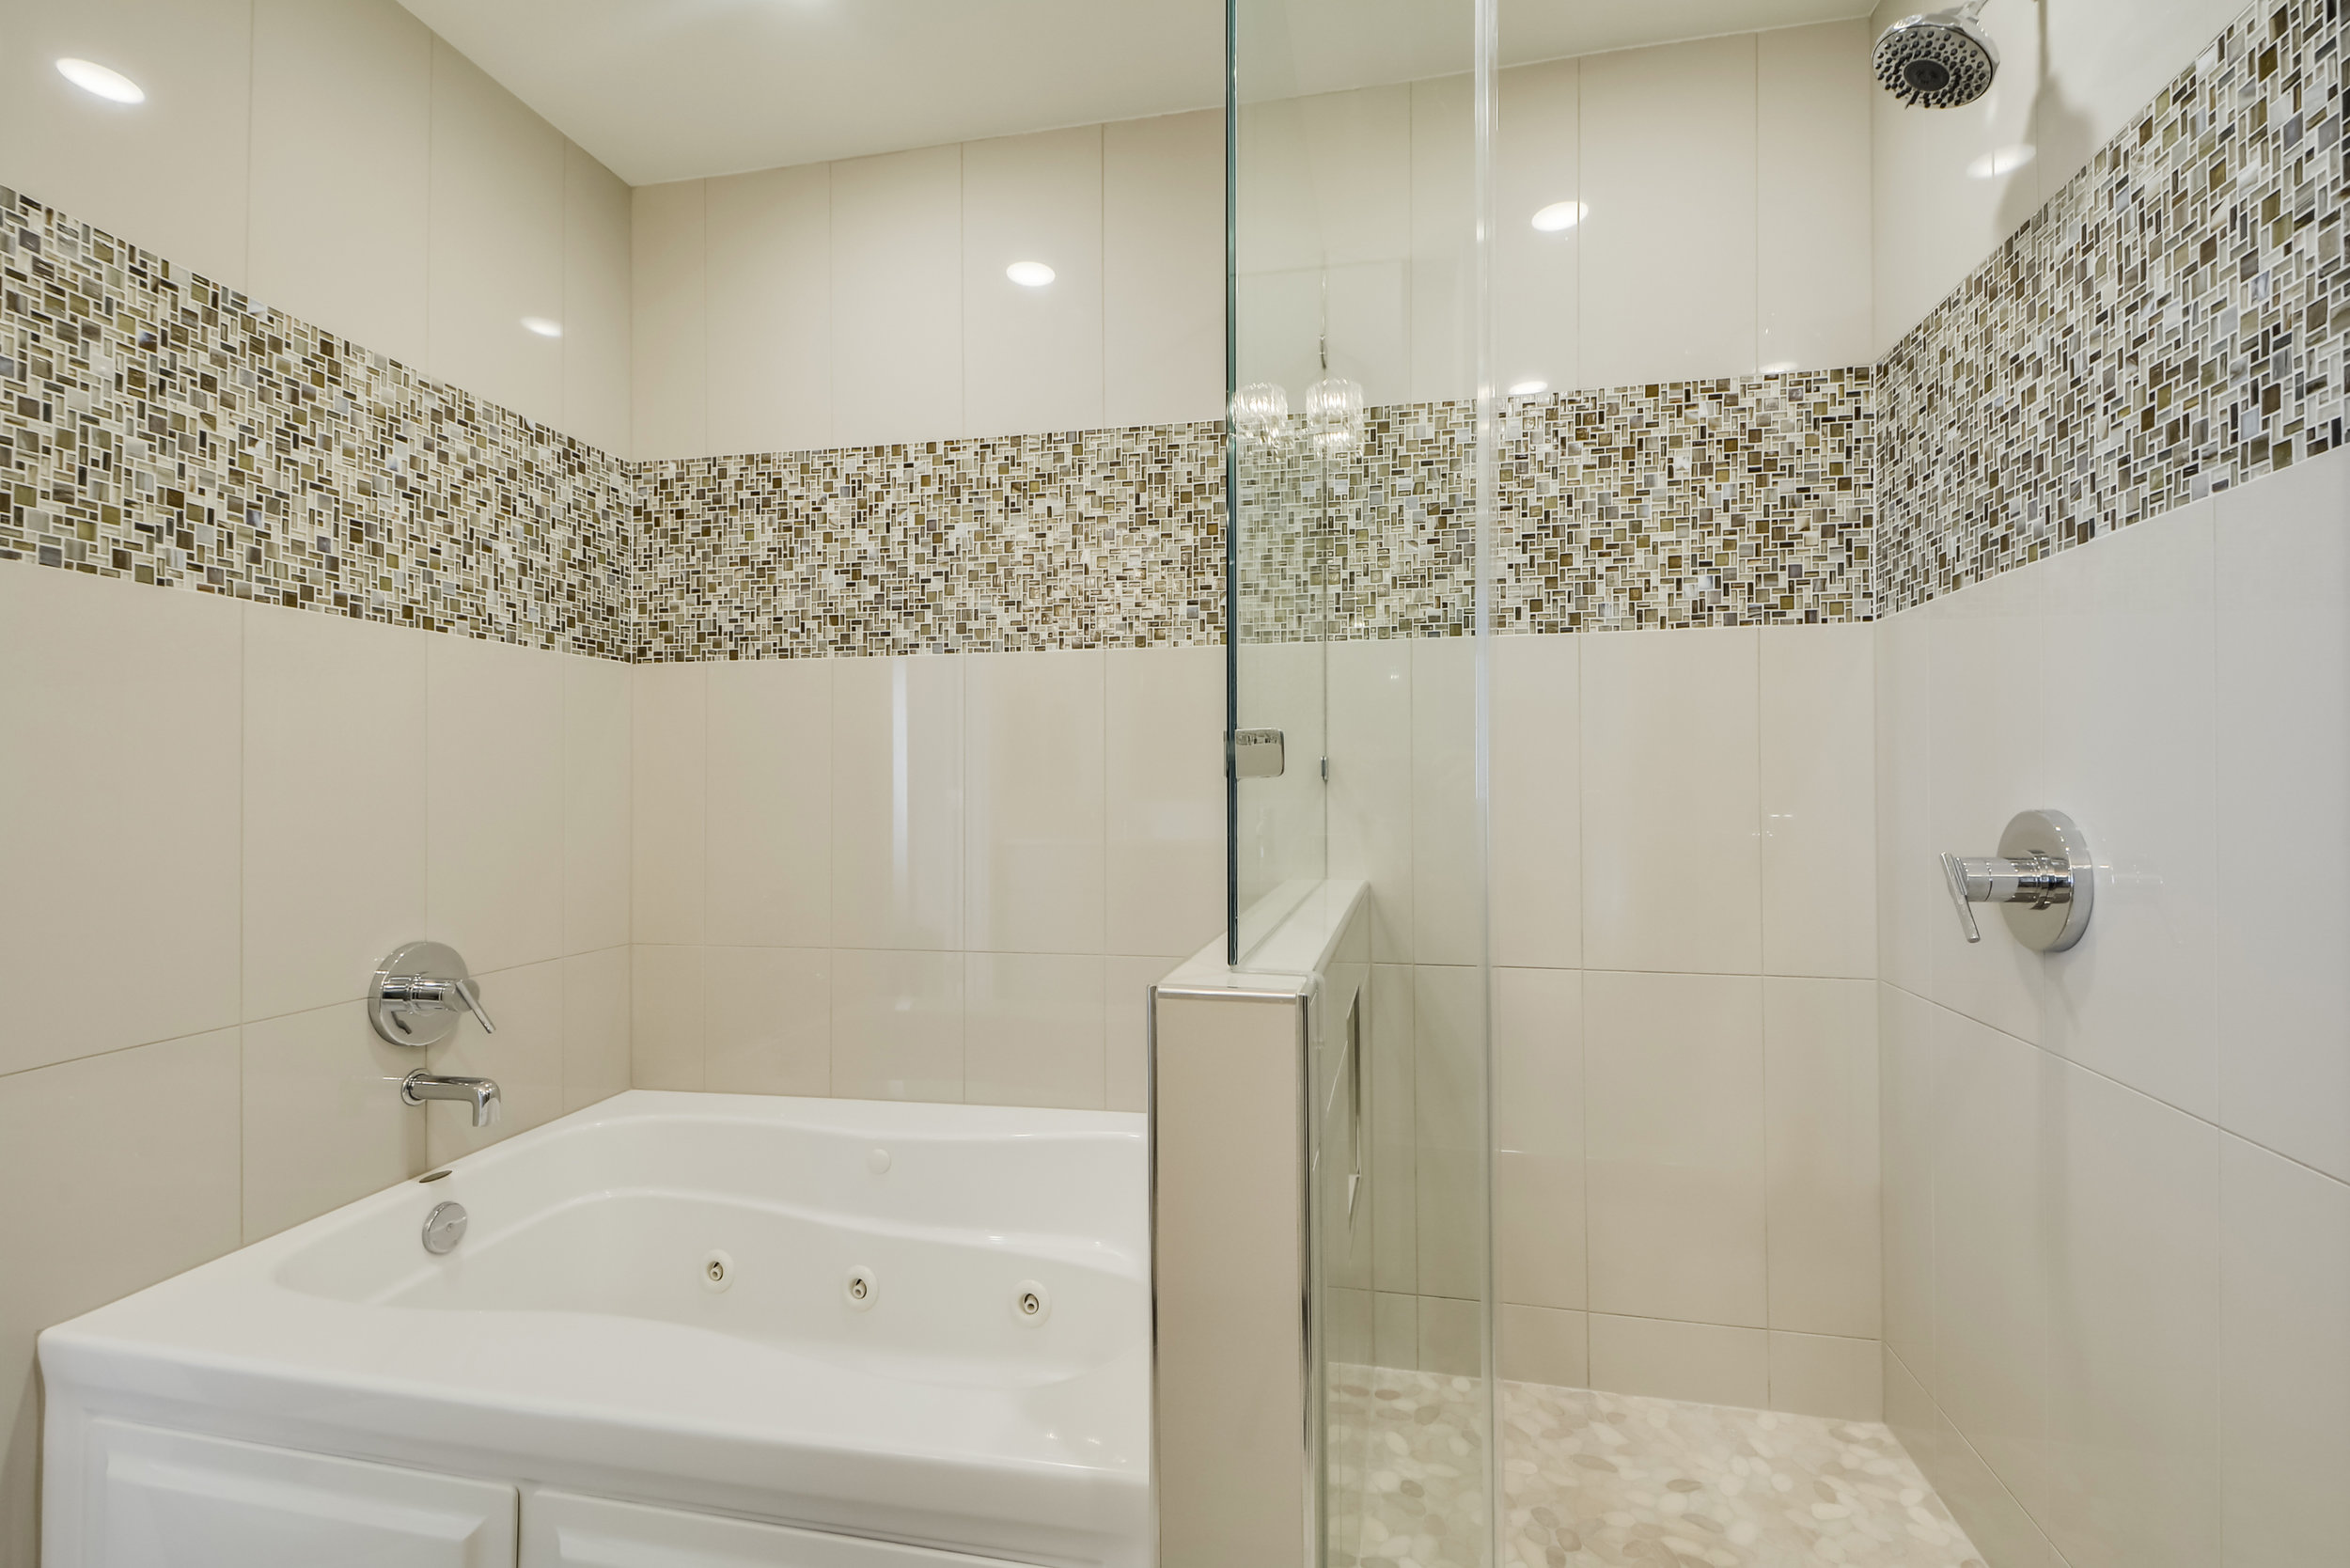 Mosaic Tile with Spa Bath and Shower Stall